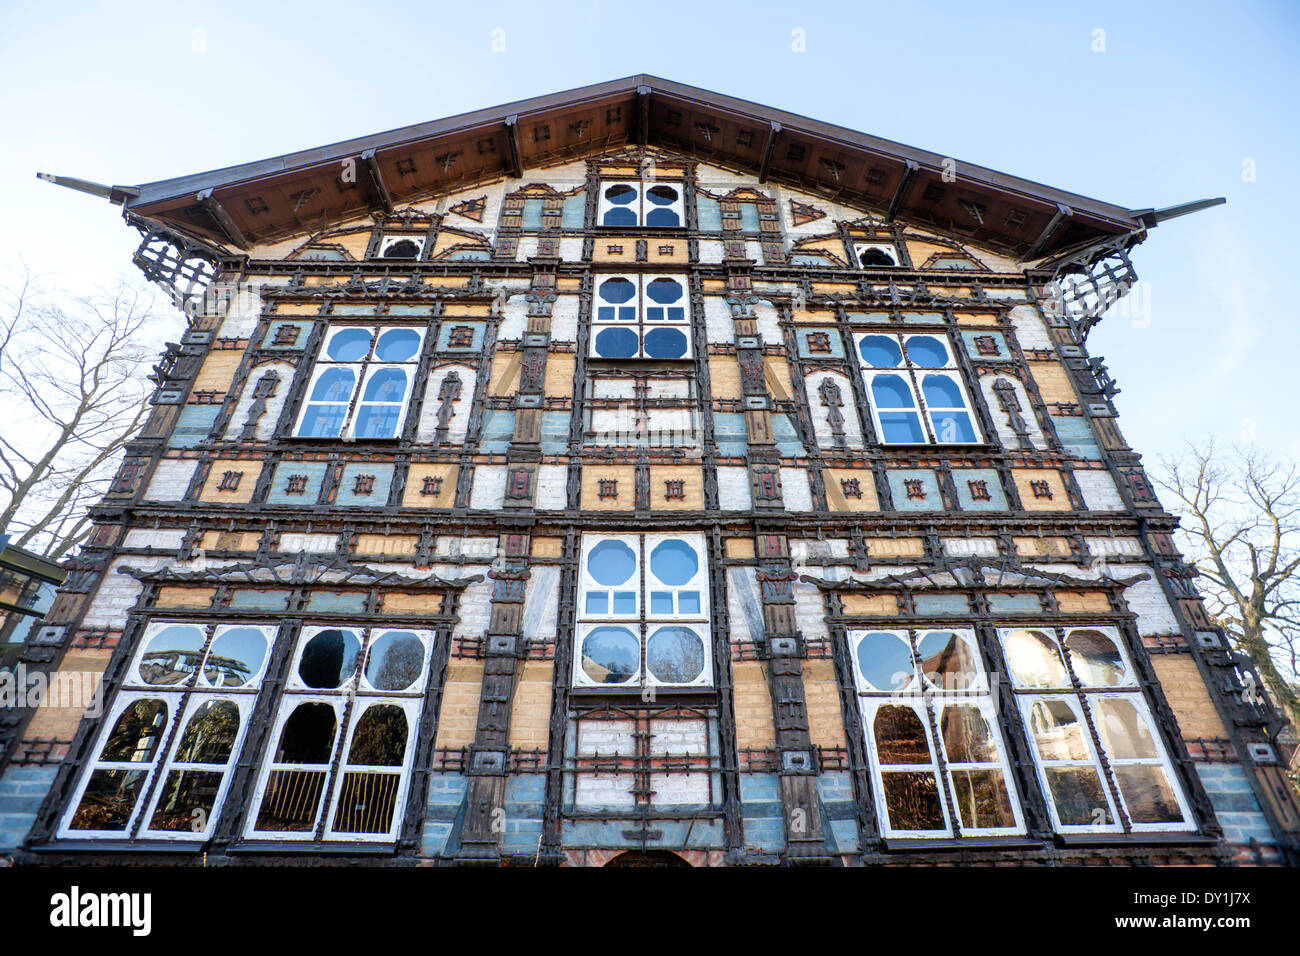 Museum Junkerhaus, Lemgo, North Rhine-Westphalia, Germany, Europe, - Stock Image